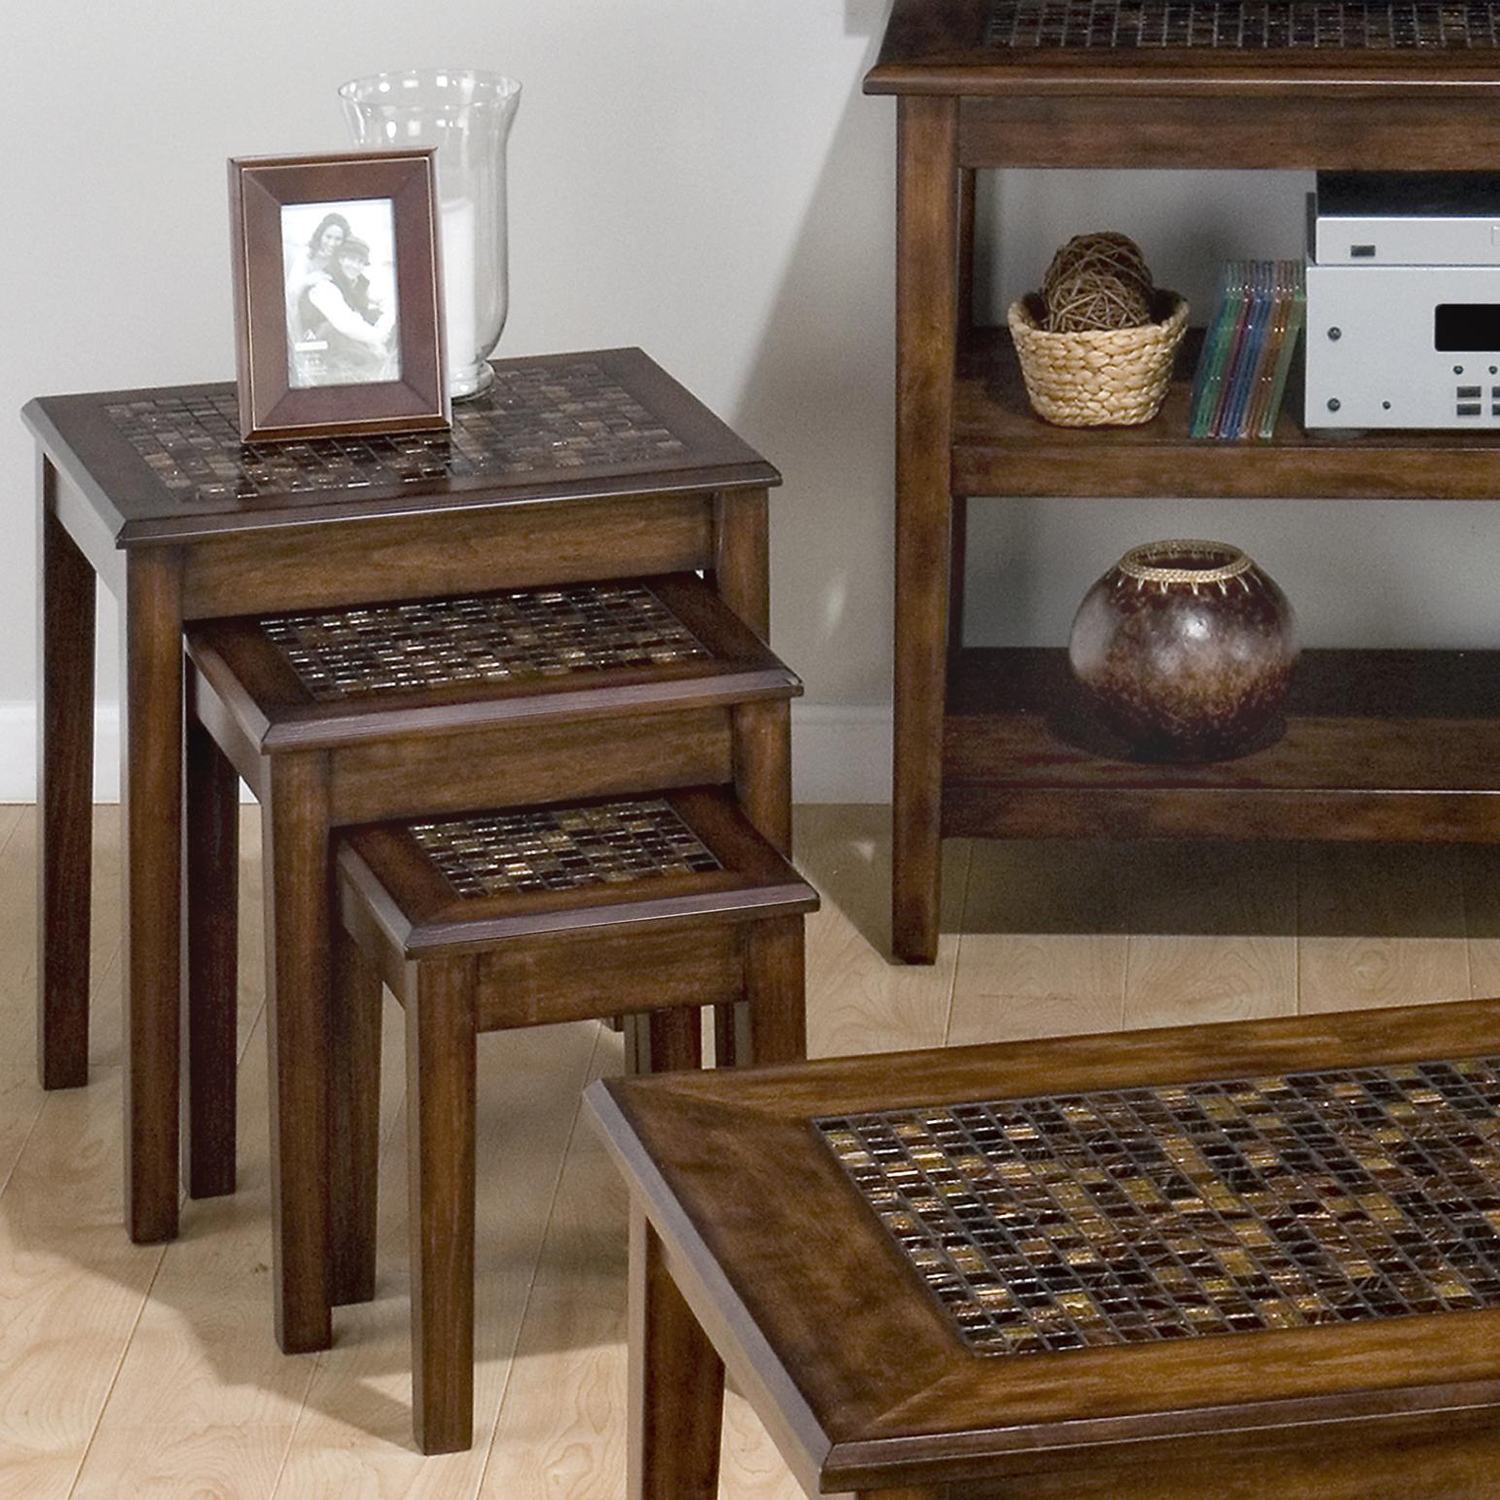 Baroque Nesting Tables - Mosaic Tile Inlay, Brown - JOFR-698-7